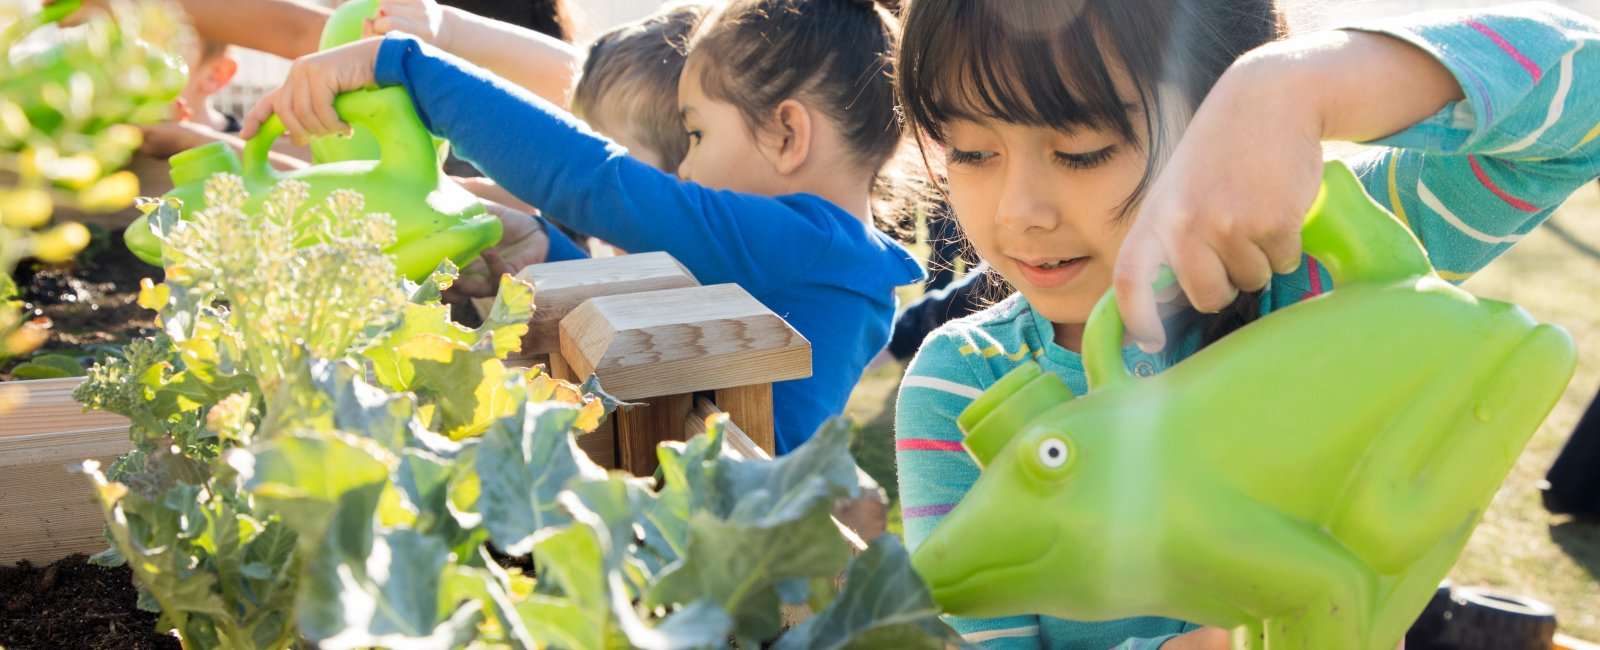 Children water greens as part of HonorHealth Desert Mission's gardening education.